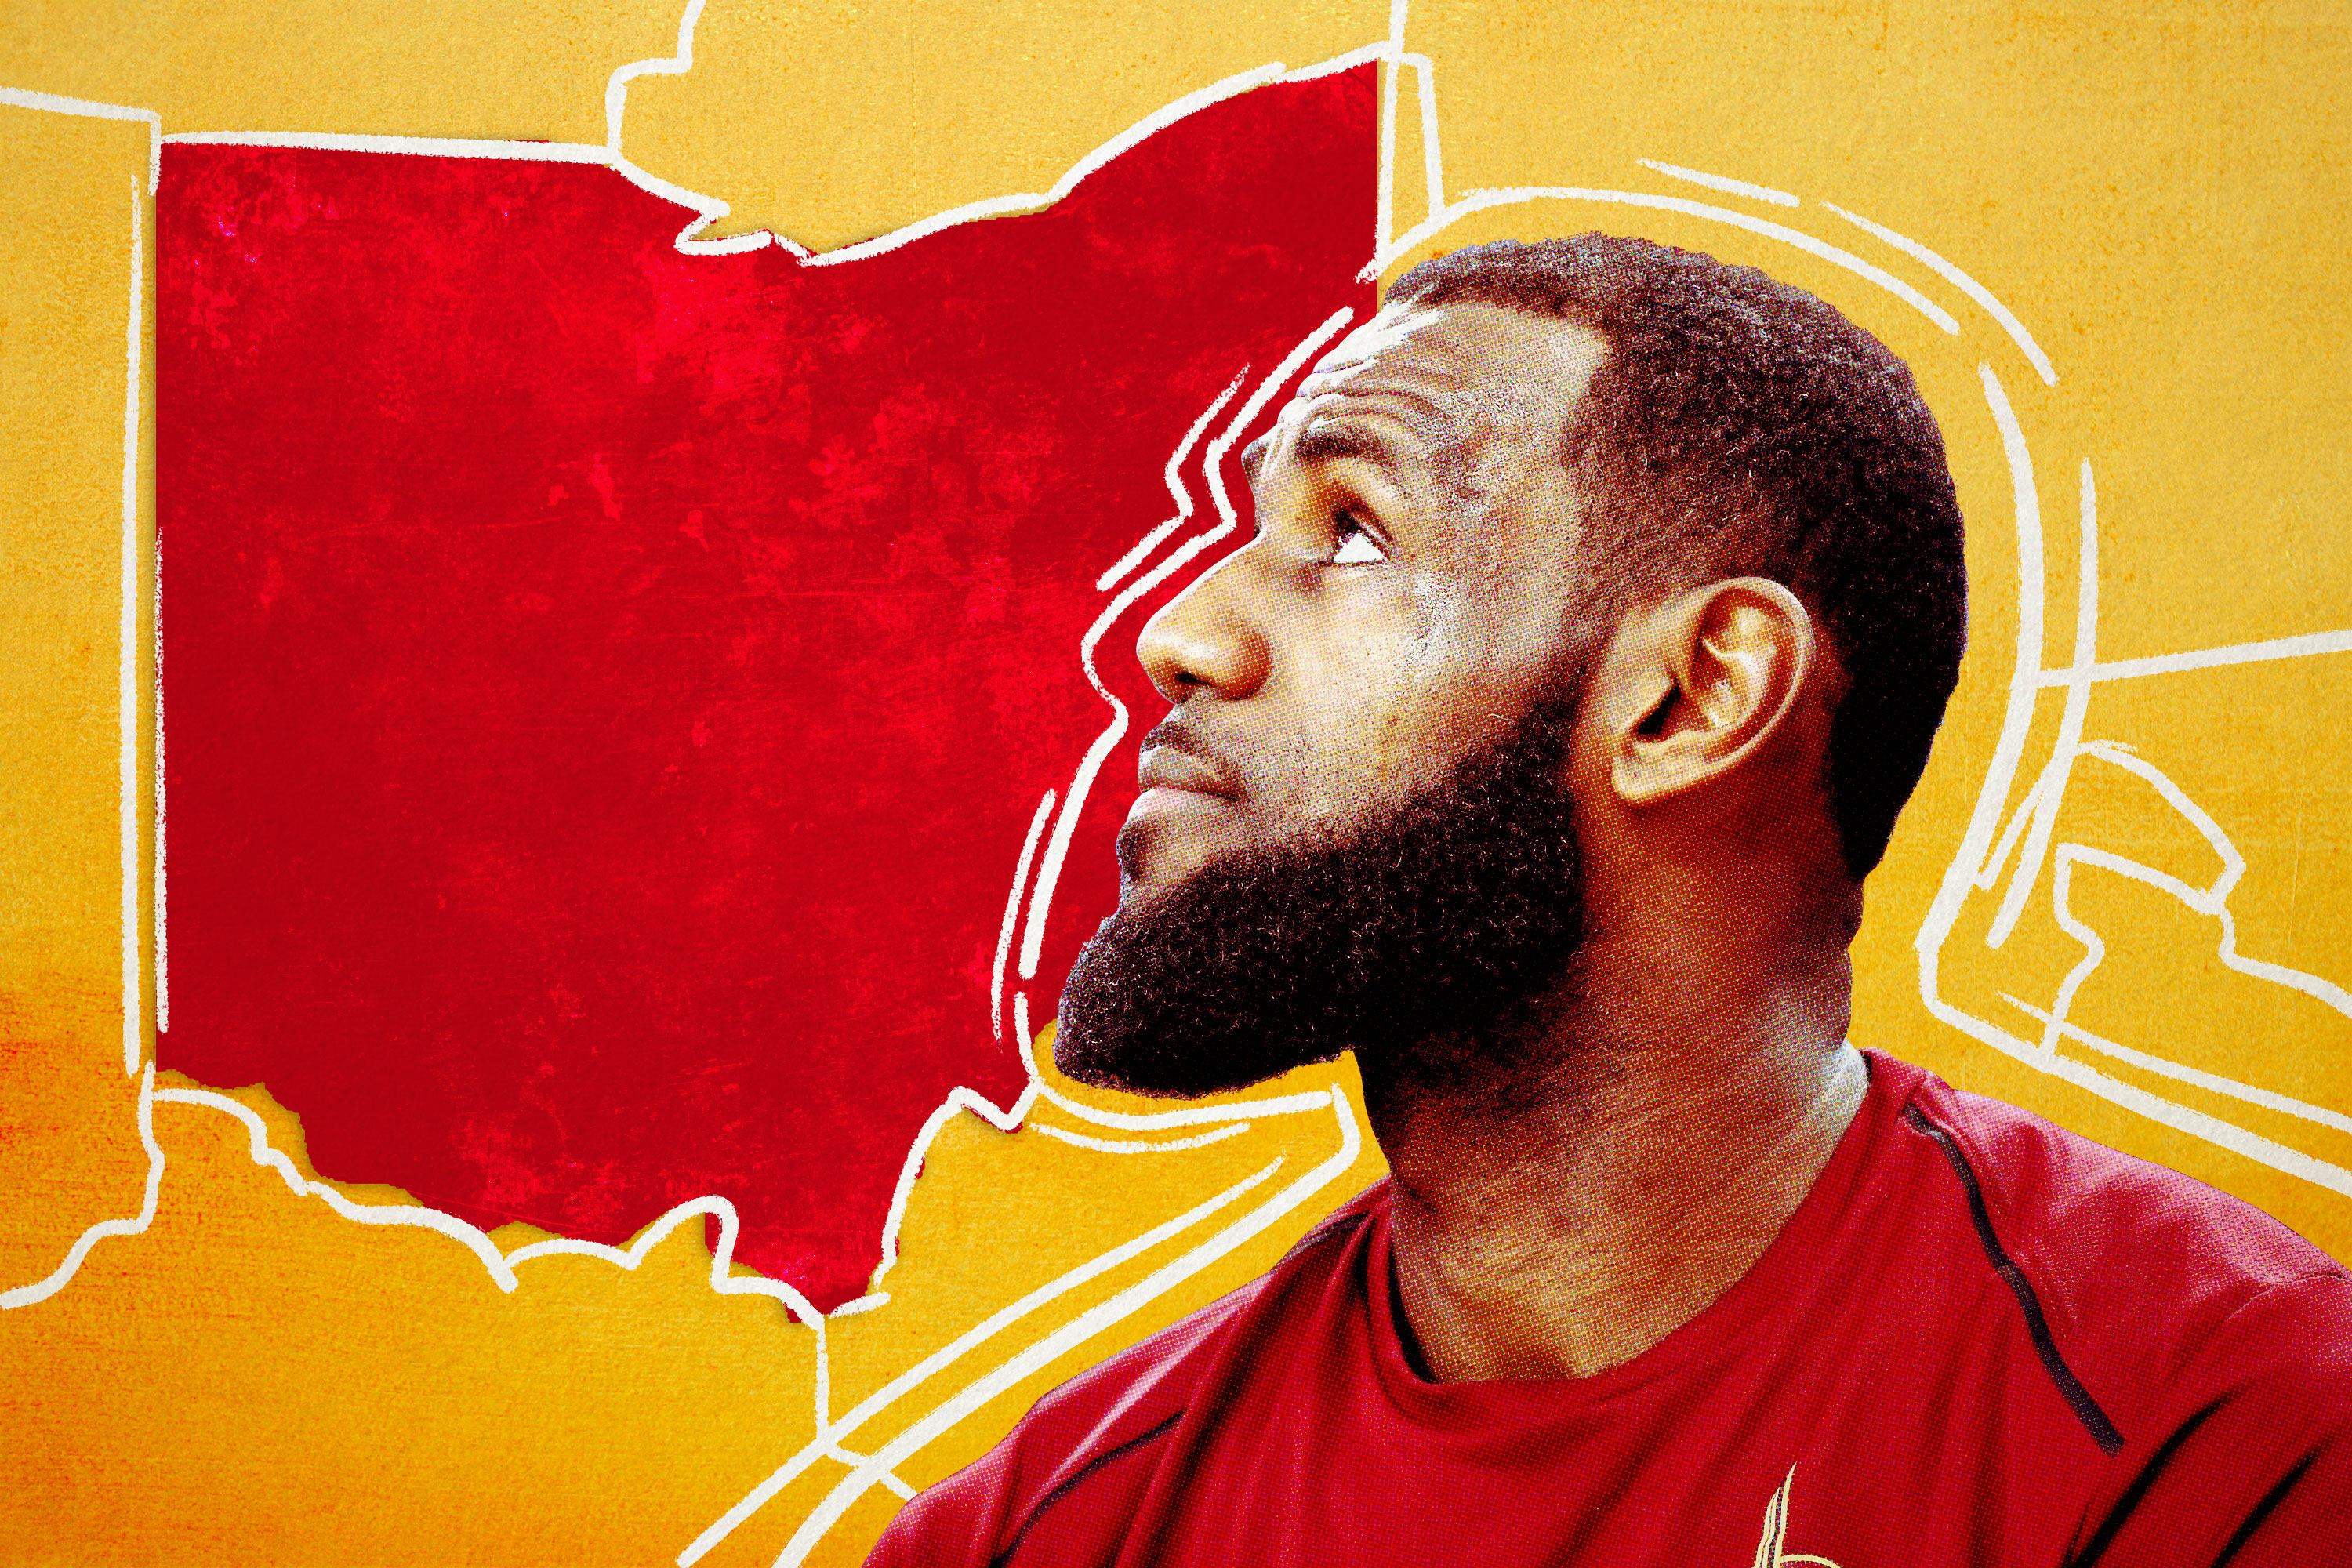 The Place That LeBron James Calls Home - The Ringer